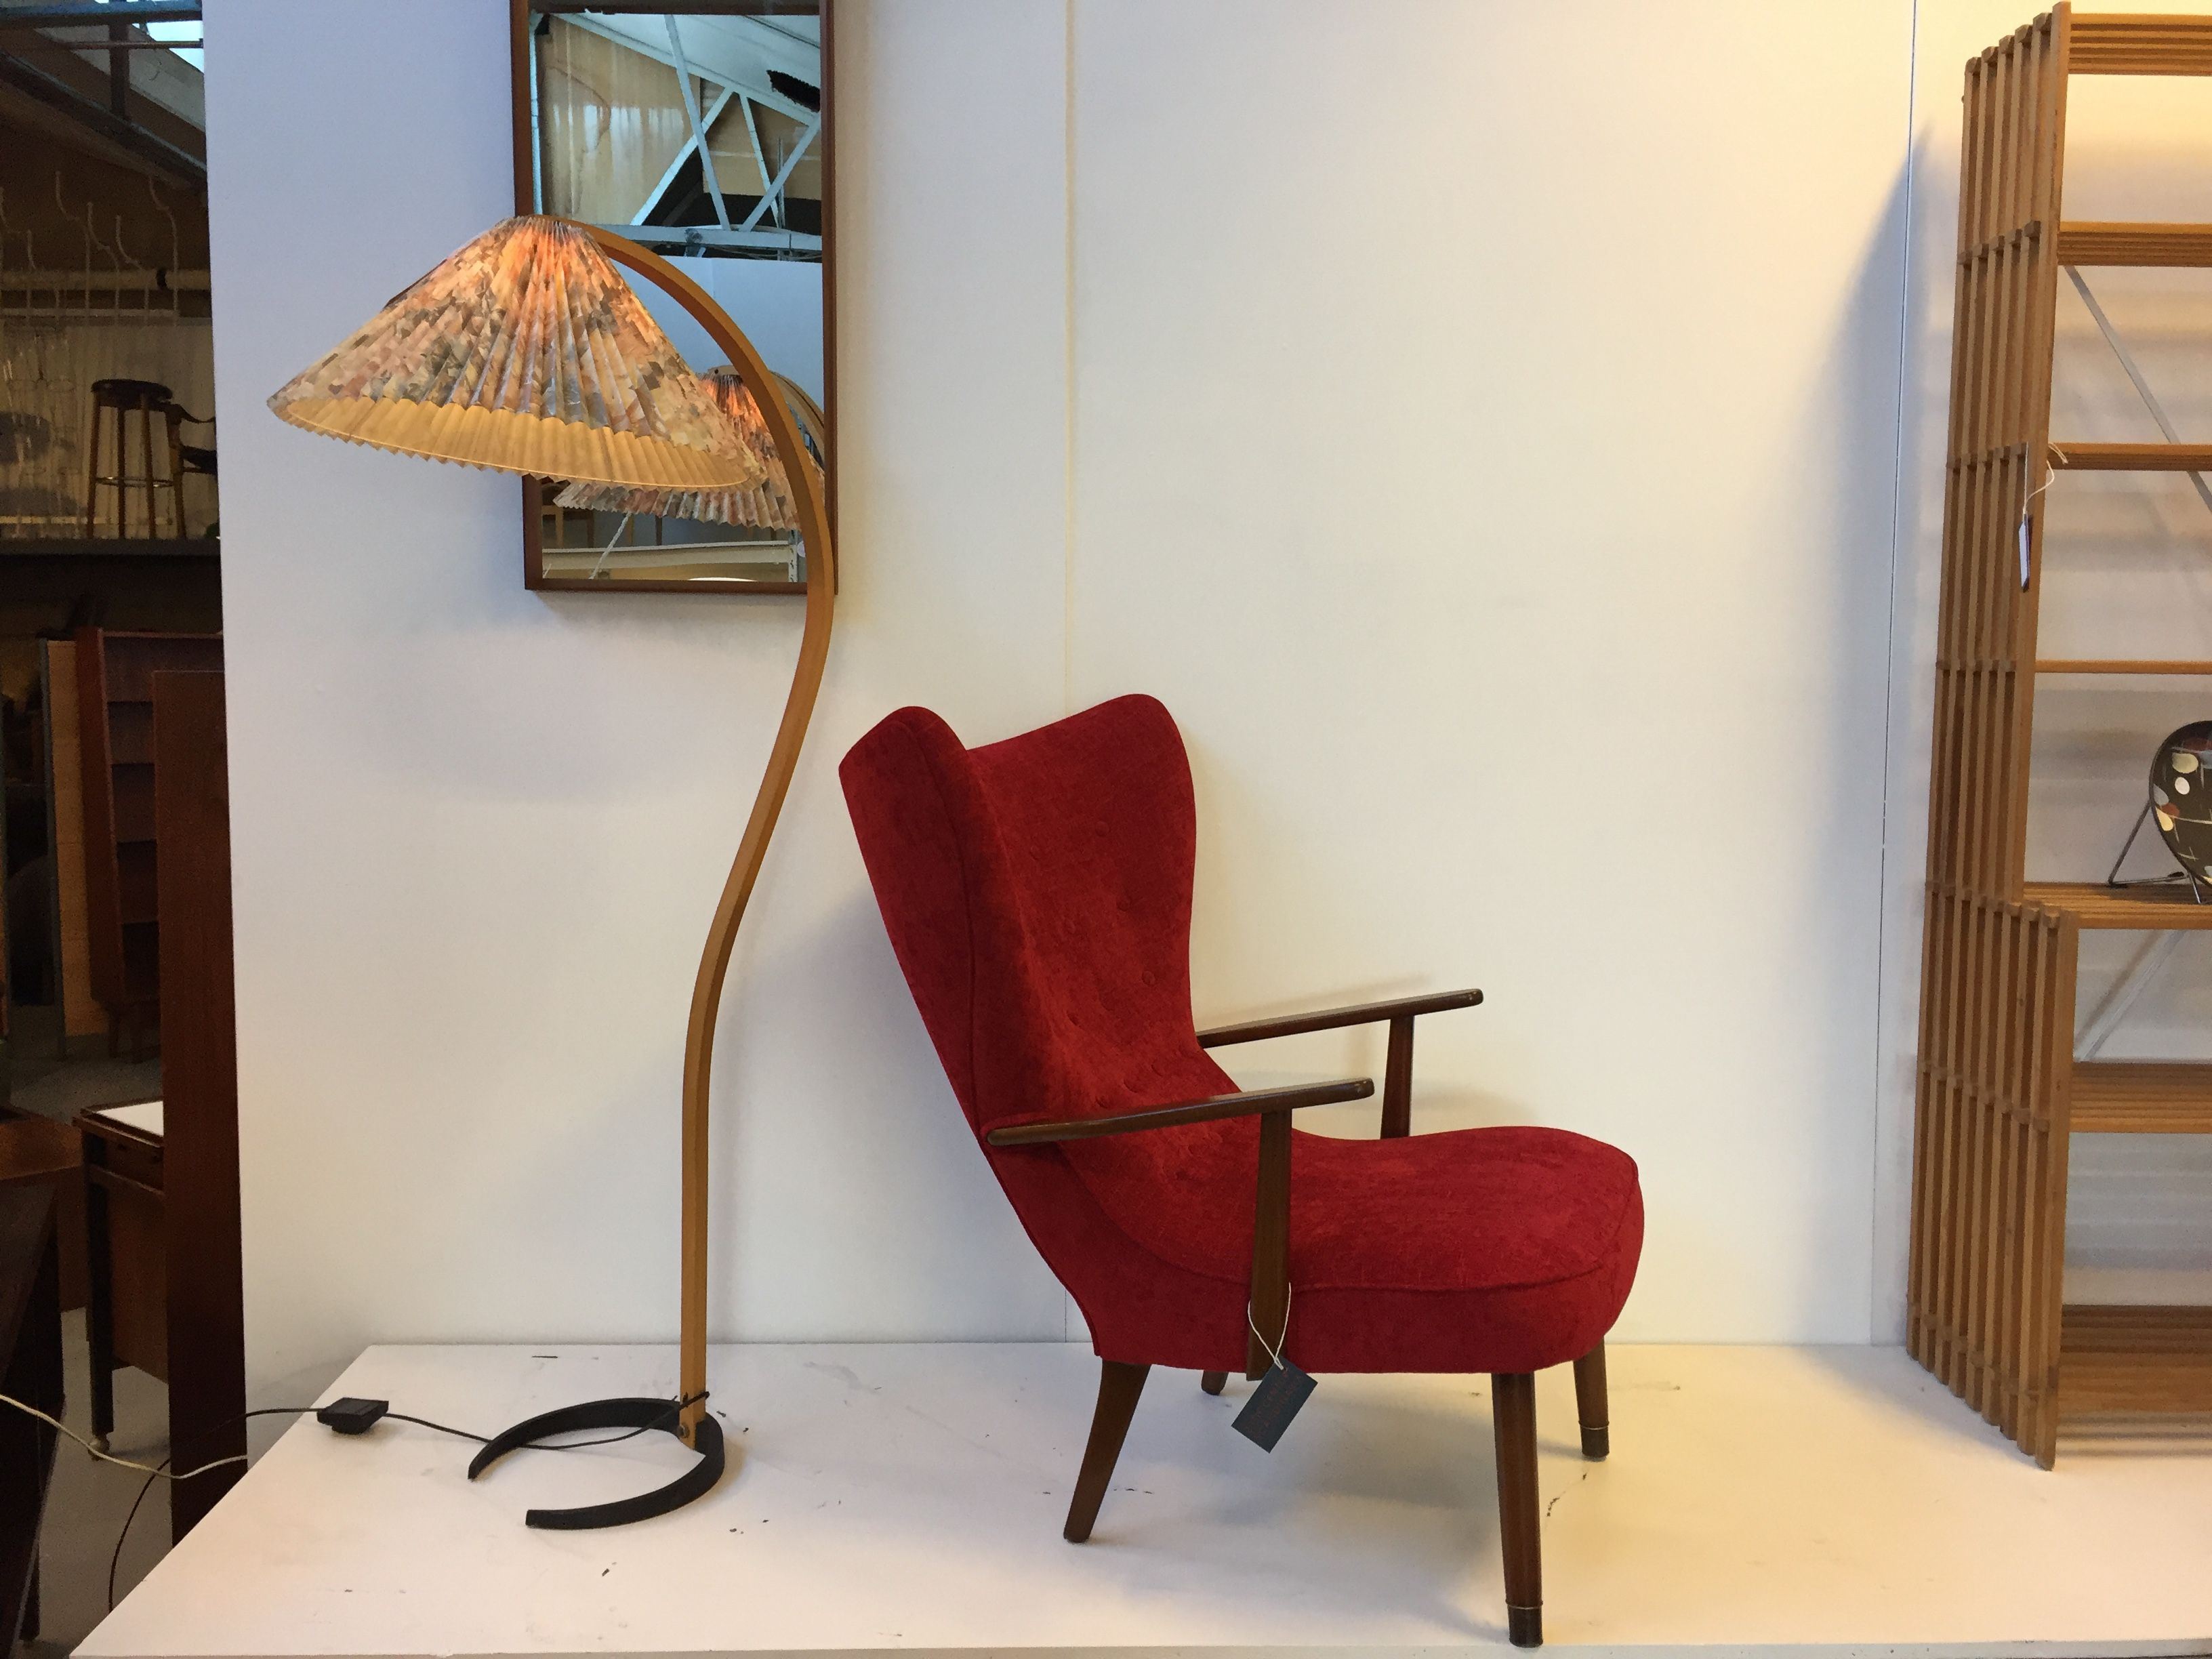 New Arrival! Newly restored and Upholstered Danish 1950's Armchair.